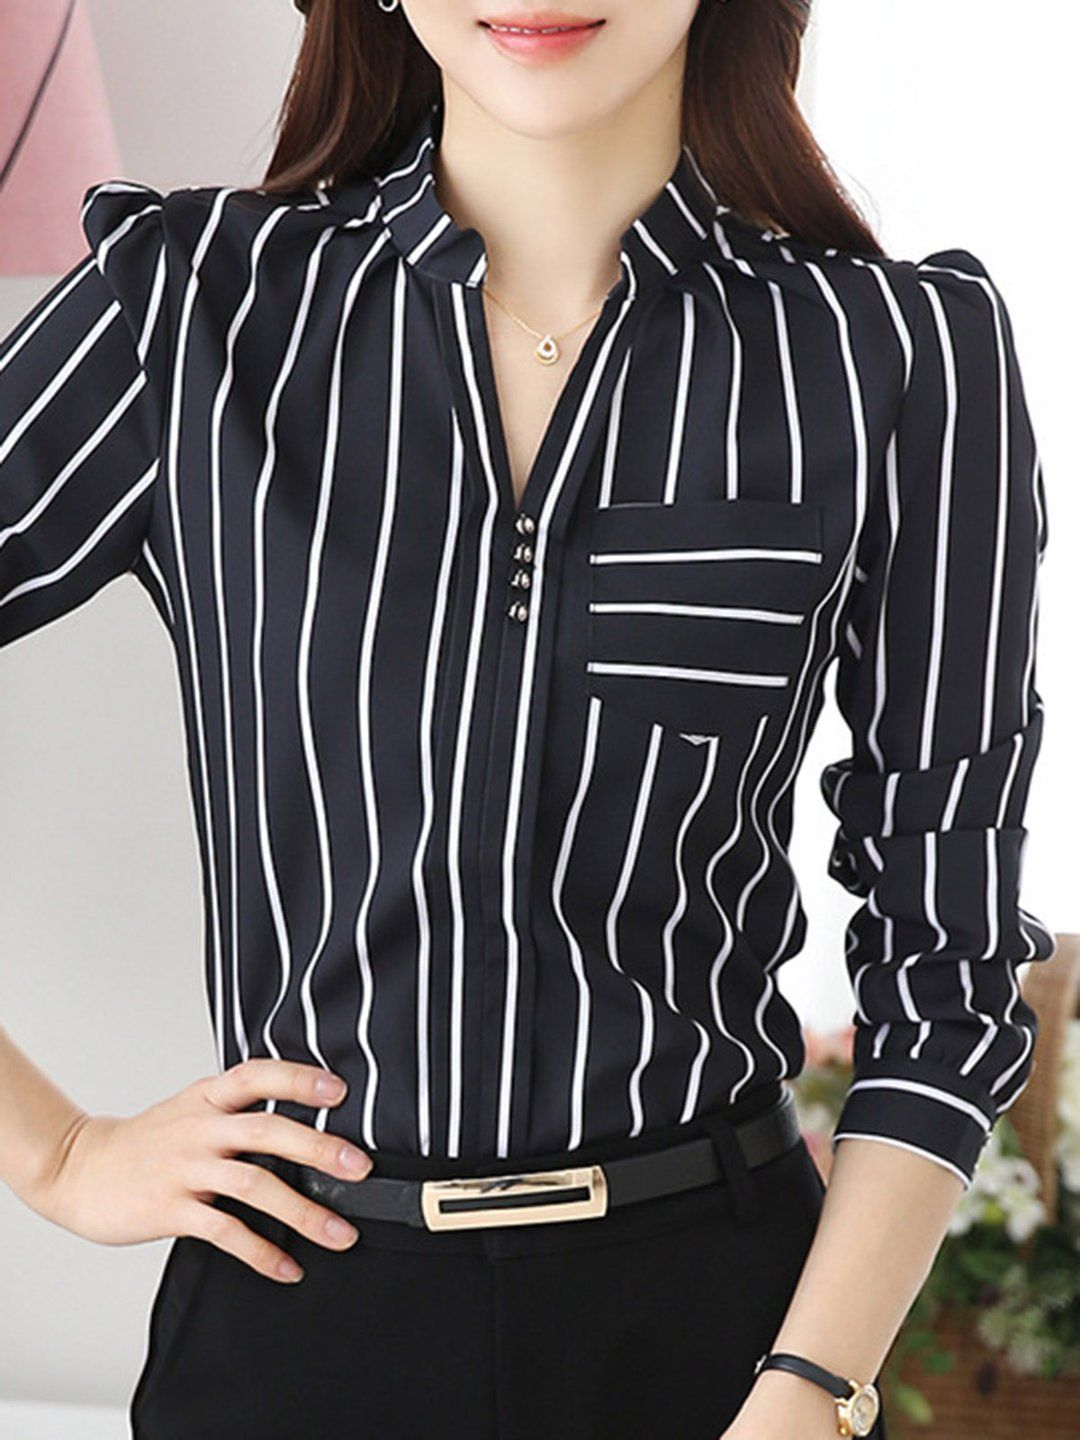 153cc5adbba Long Sleeve V Neck Plus Size Blouse in 2019 | blusa especial ...